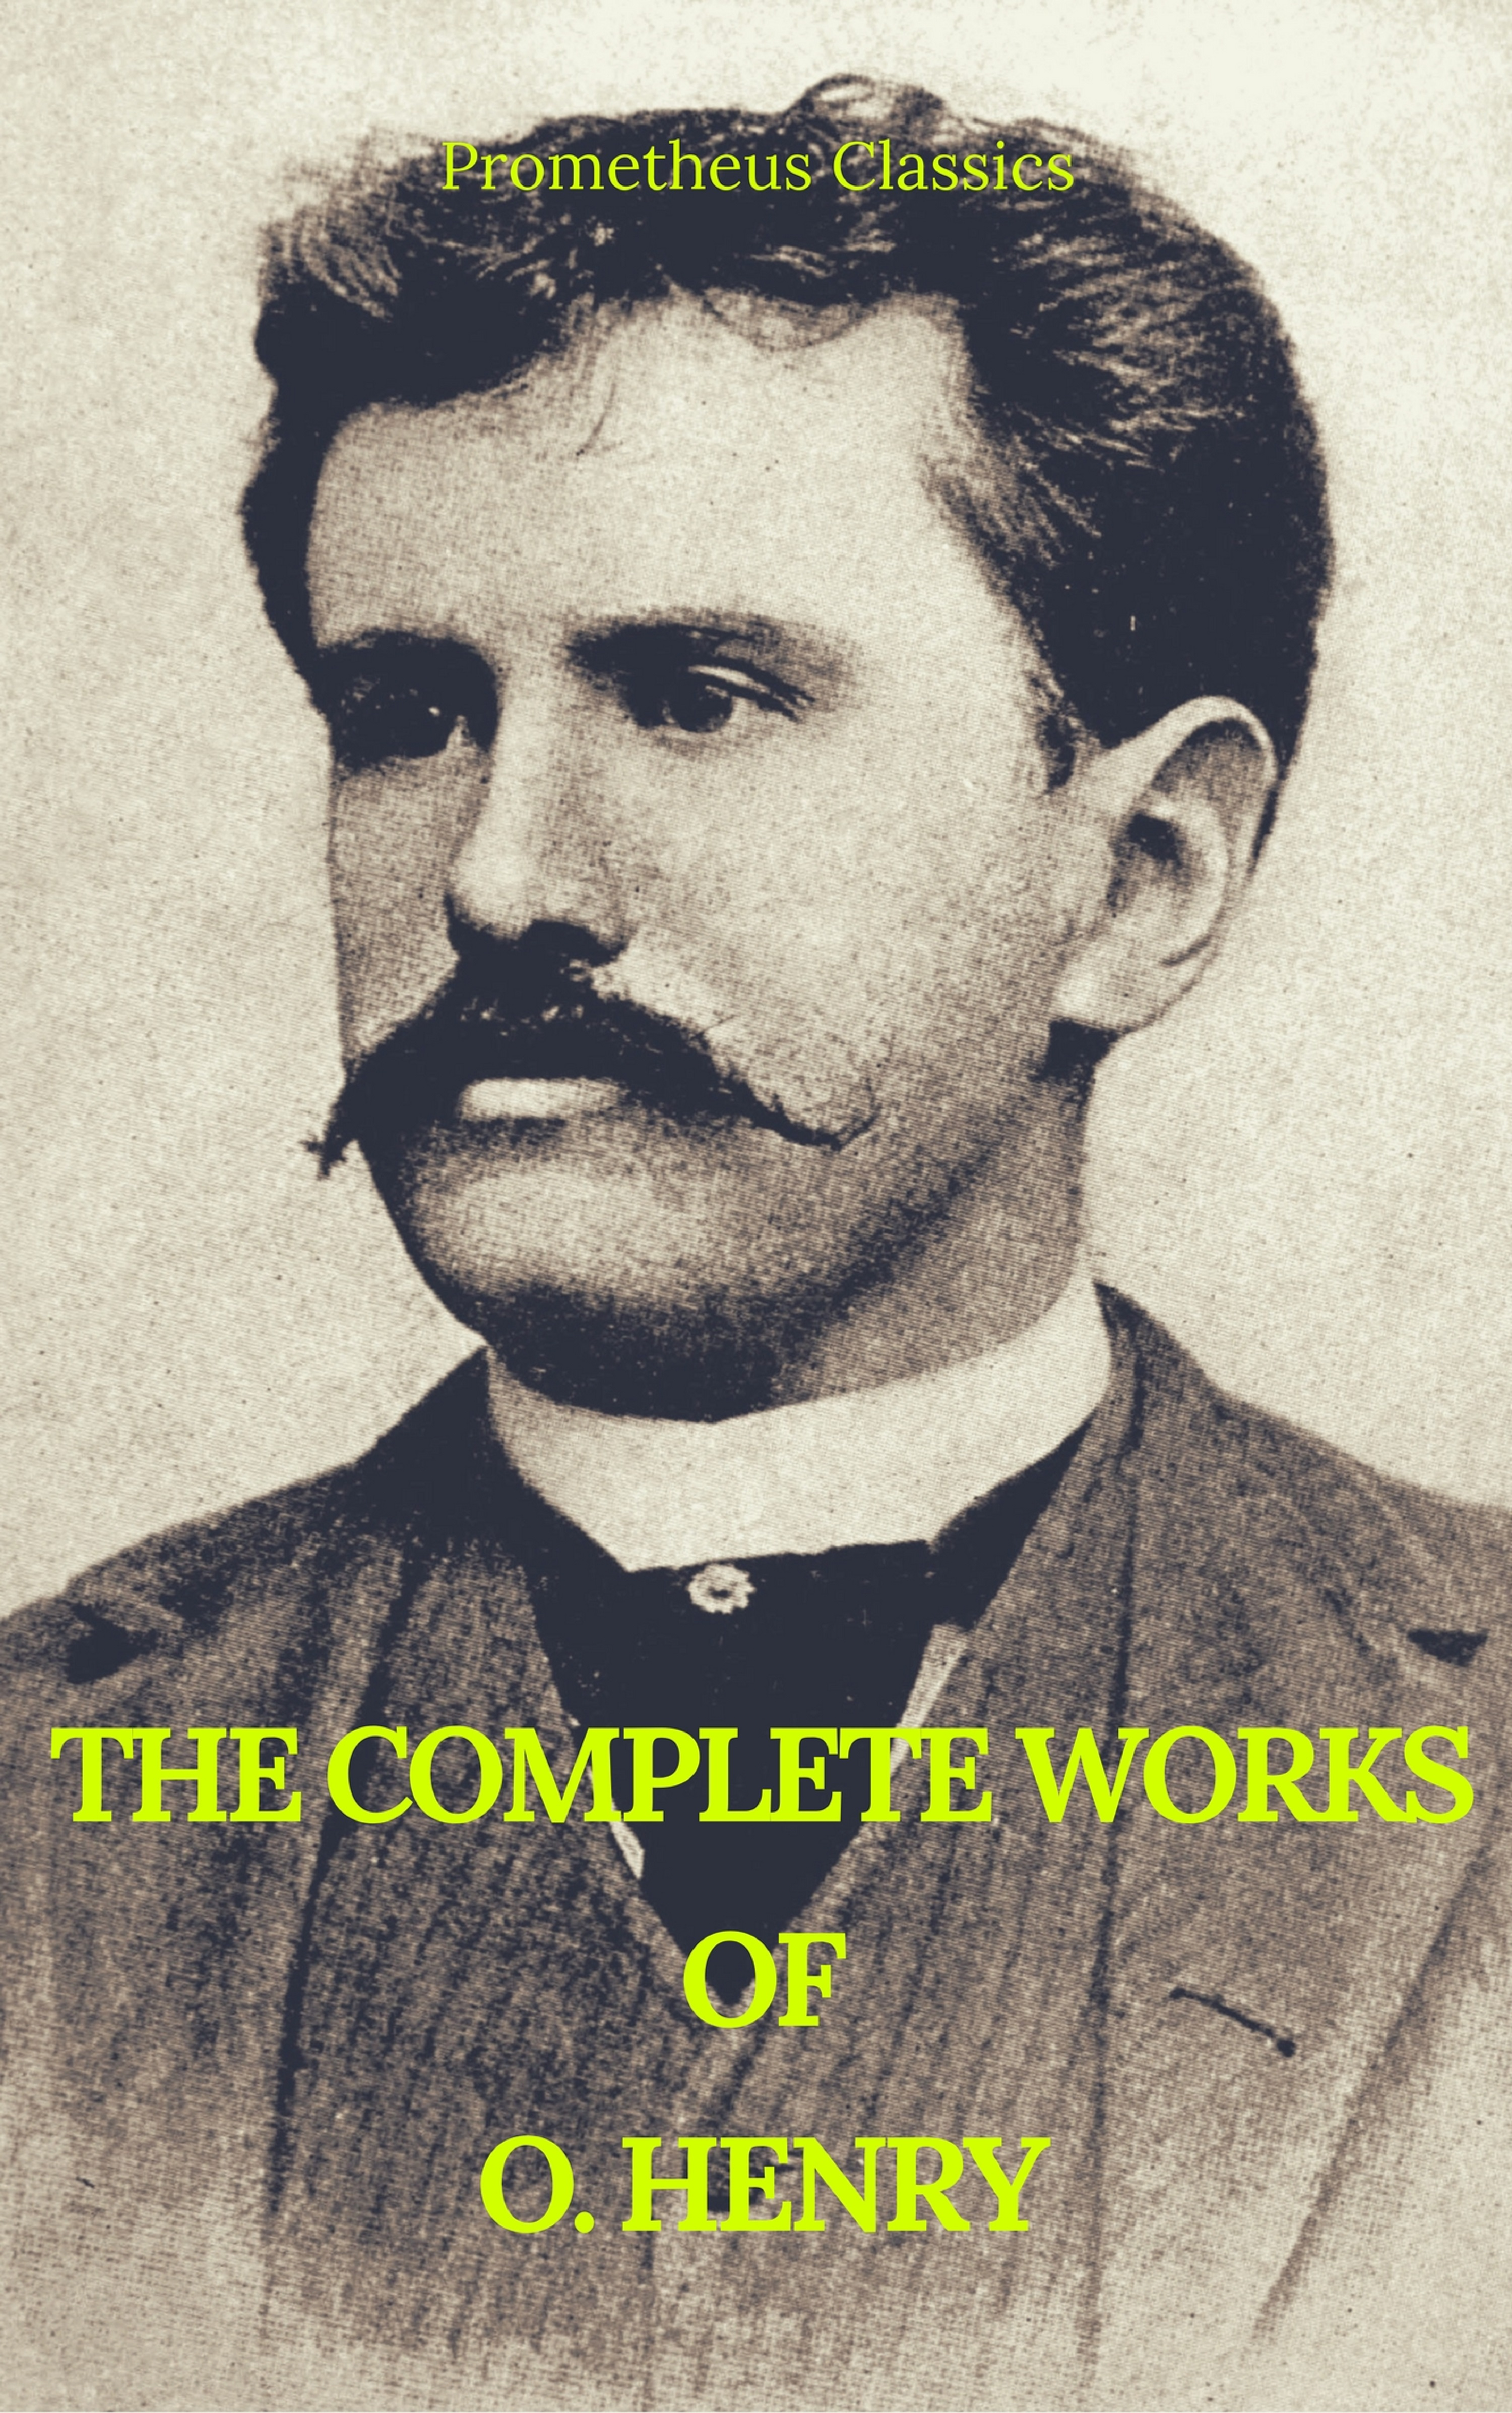 цена на O. Hooper Henry The Complete Works of O. Henry: Short Stories, Poems and Letters (Best Navigation, Active TOC) (Prometheus Classics)